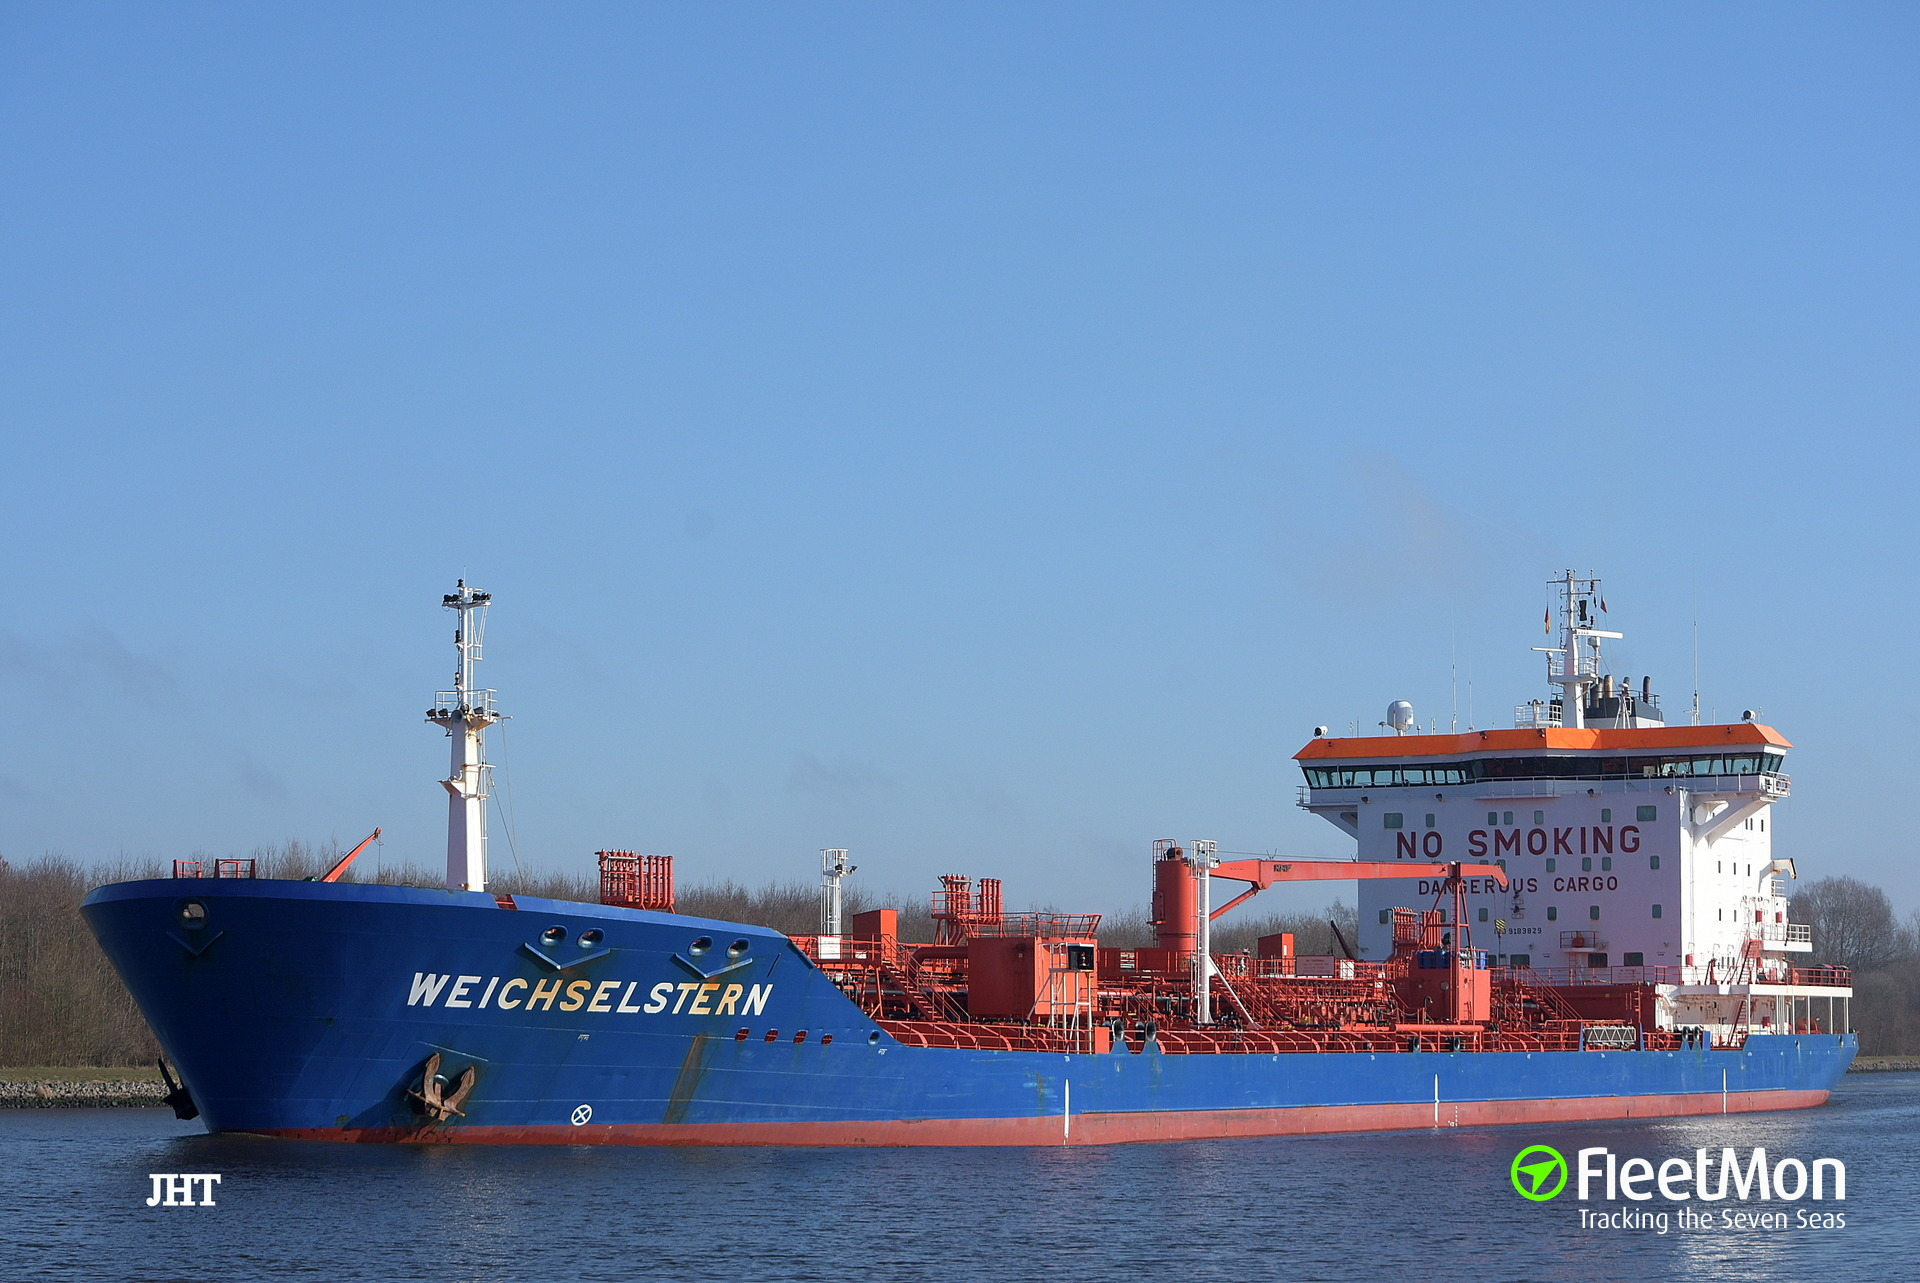 Two engineers suffered burns in explosion on board of WEICHSELSTERN